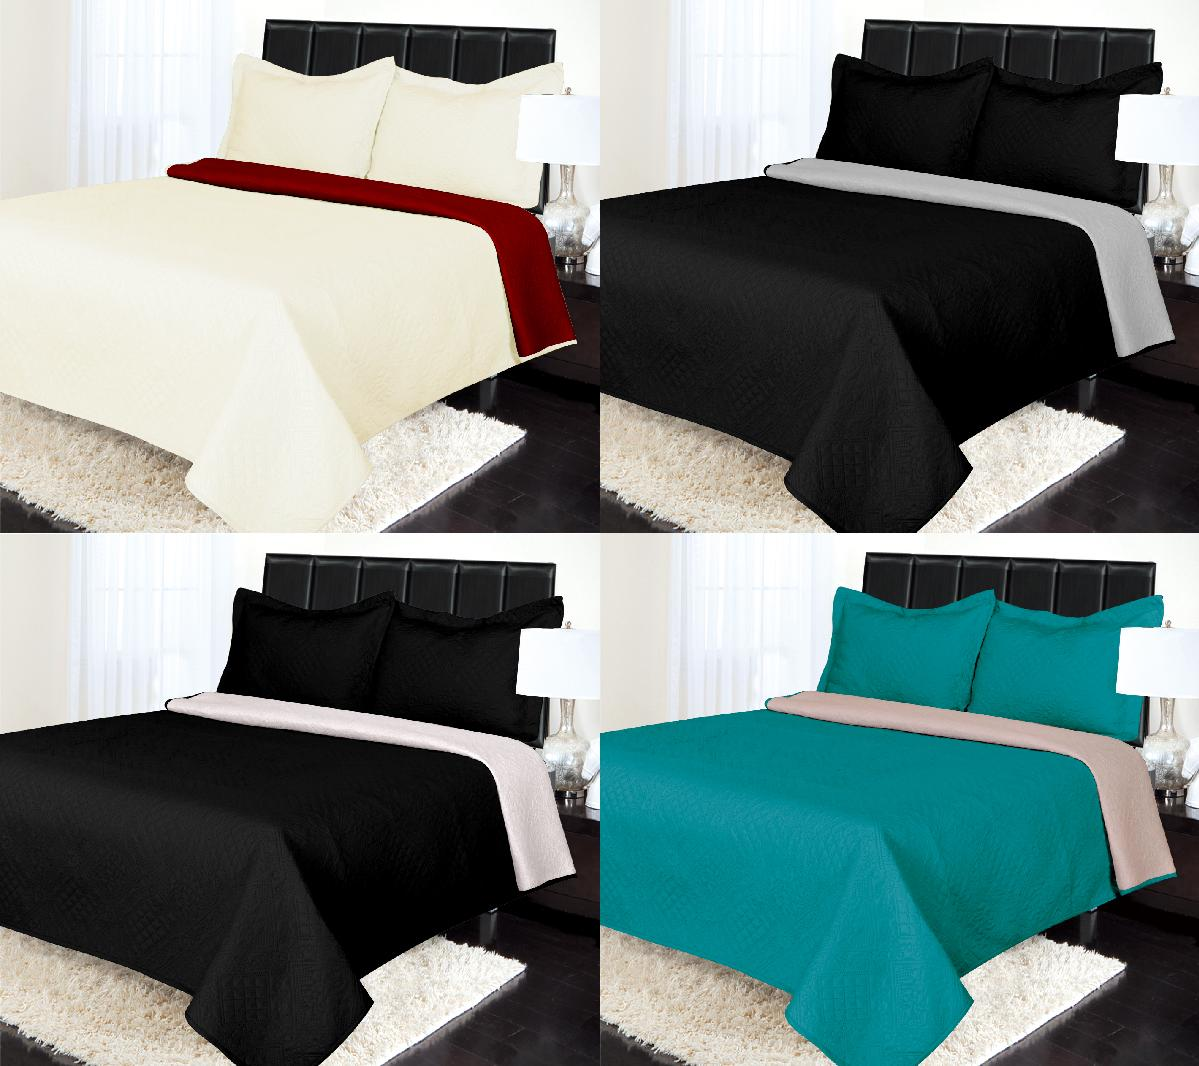 NEW REVERSIBLE PINSONIC 2-SIDED QUILT SET BEDDING BEDSPRED D